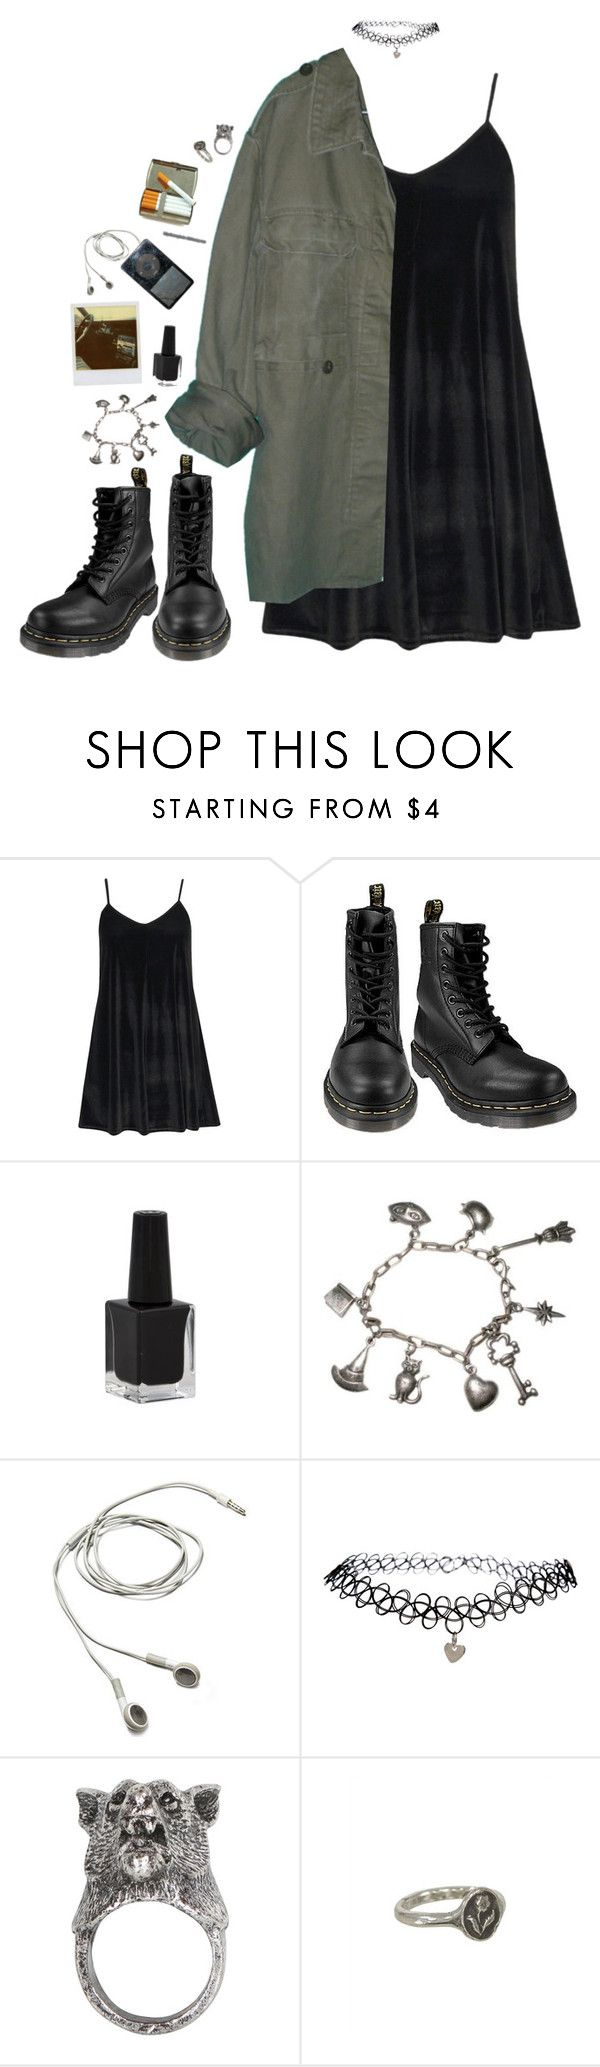 """""""stranger things have happened here"""" by dahmergirl ❤ liked on Polyvore featuring Boohoo, Dr. Martens, Rimmel, Rubie's Costume Co., Polaroid, ASOS, Gathering Eye, Pyrrha, black and Dark"""